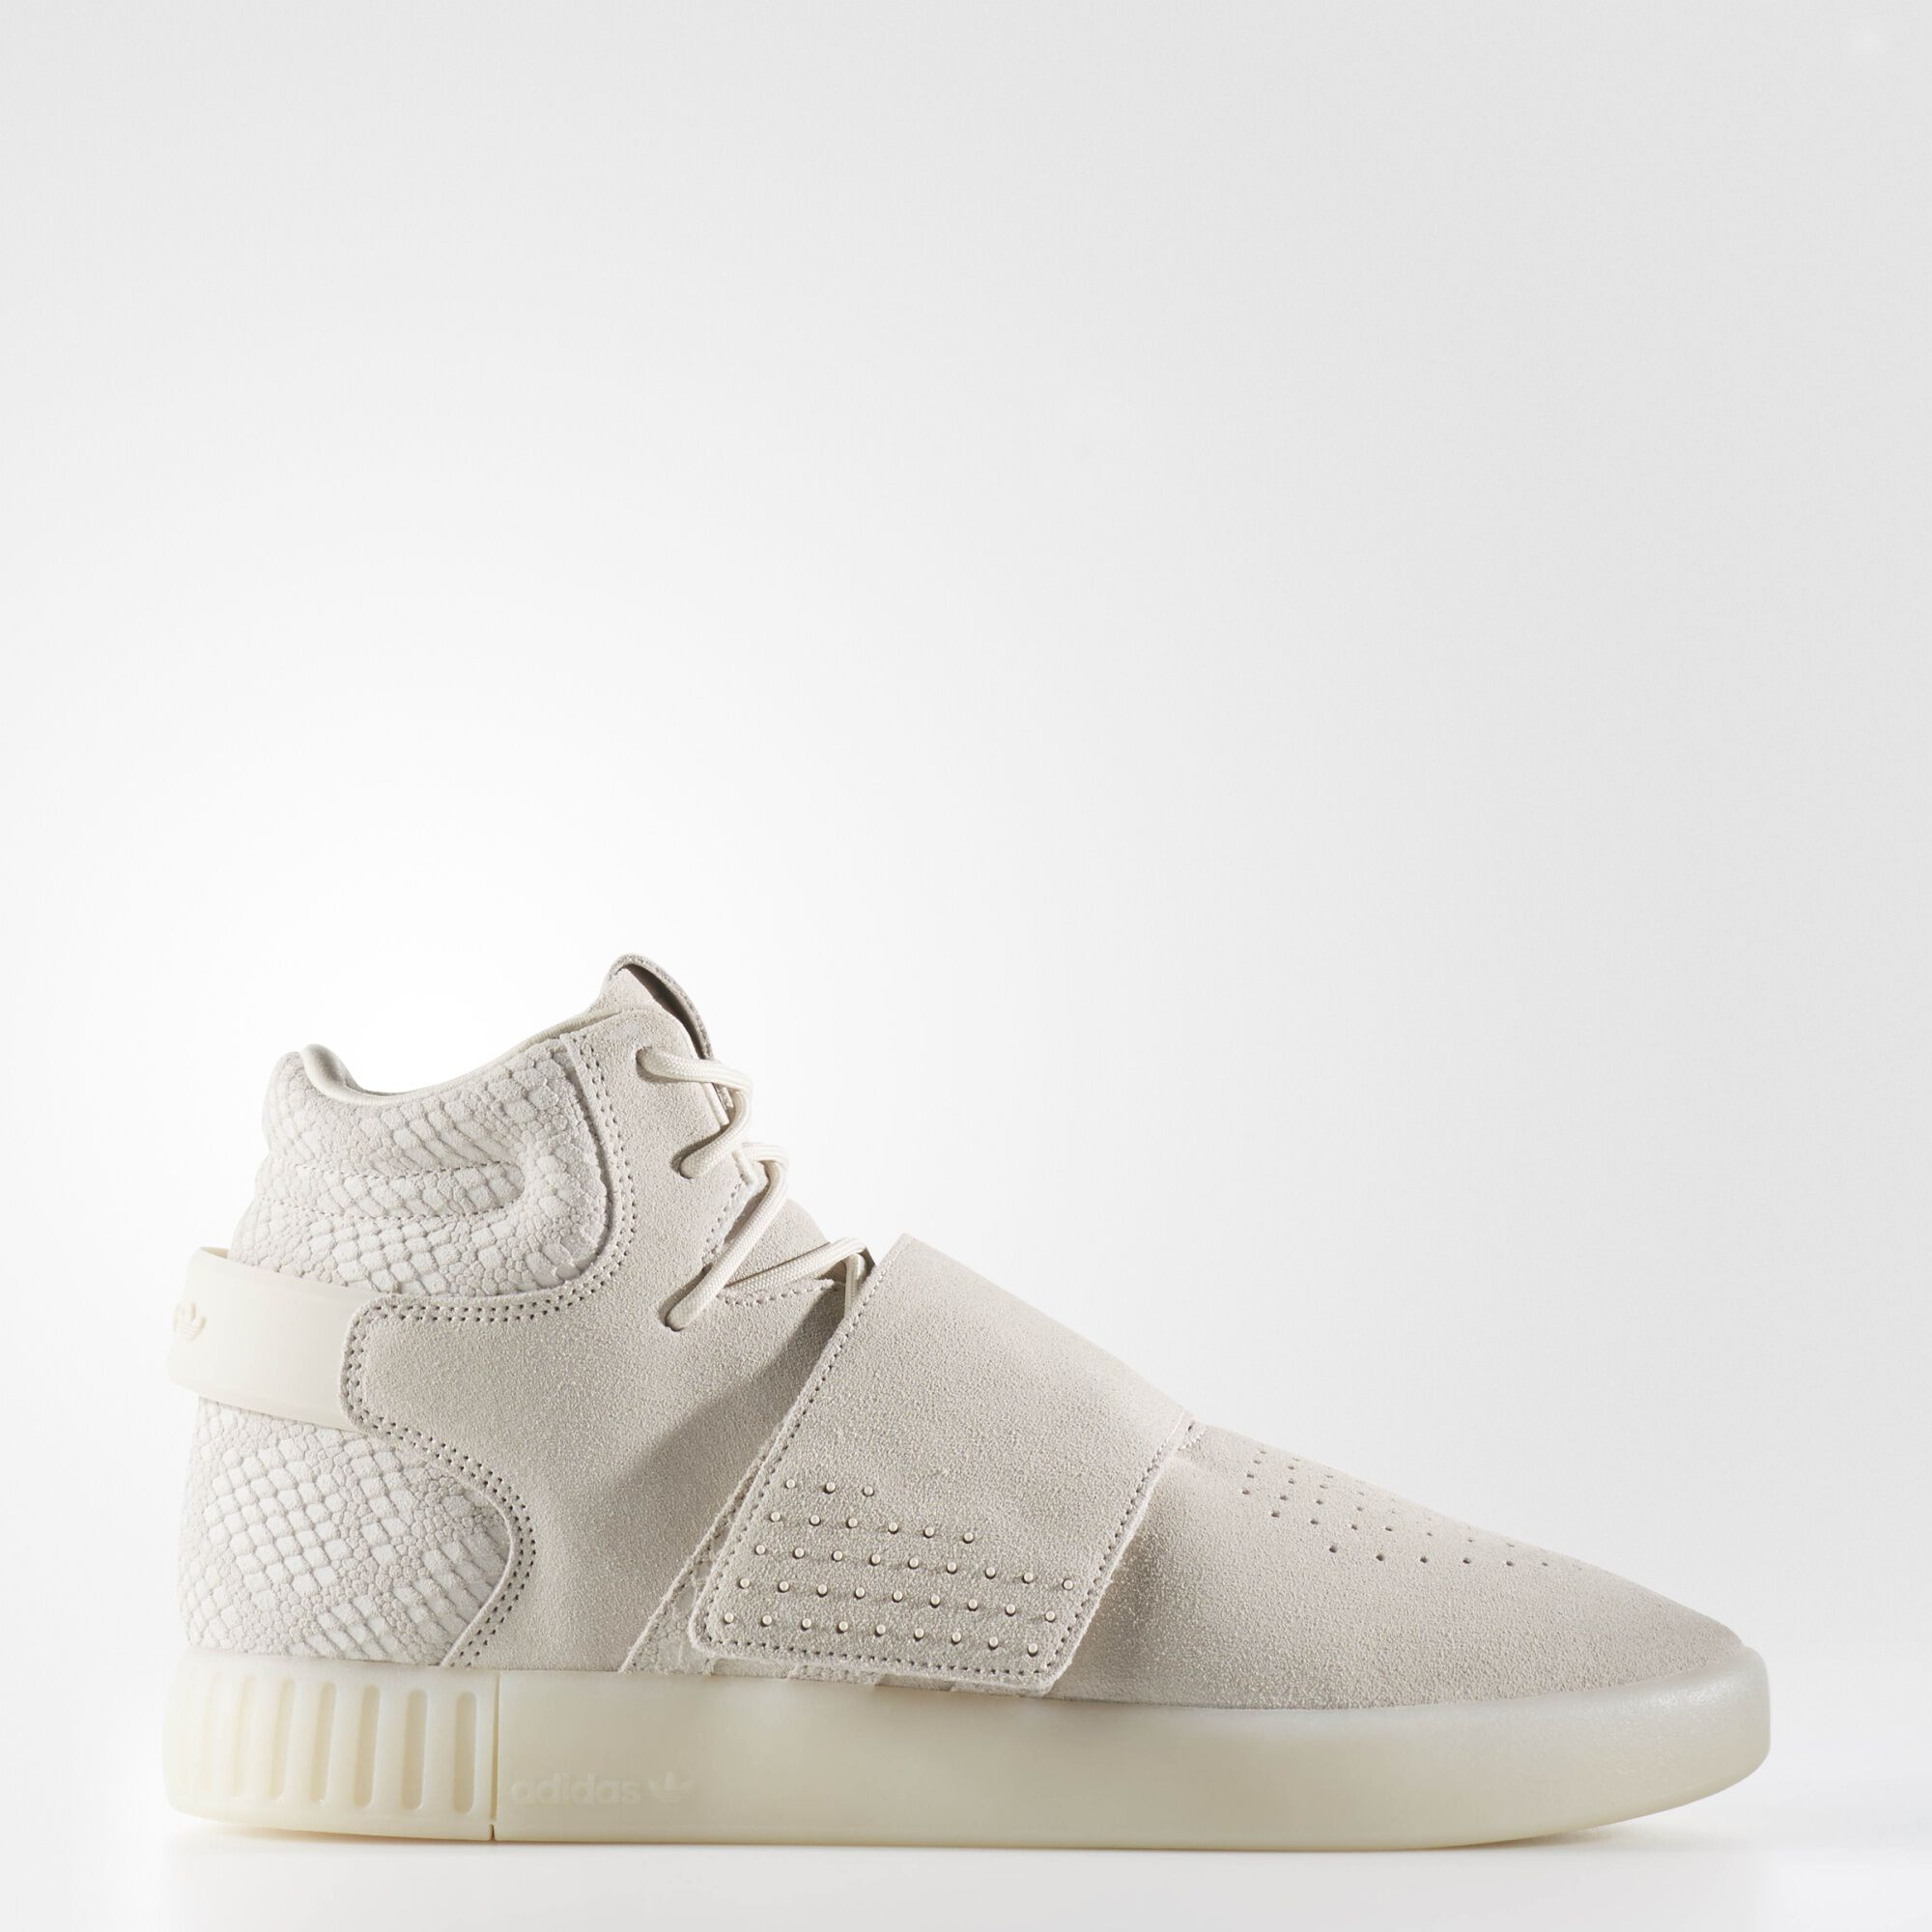 Adidas Women Originals Tubular Shoes adidas Suomi